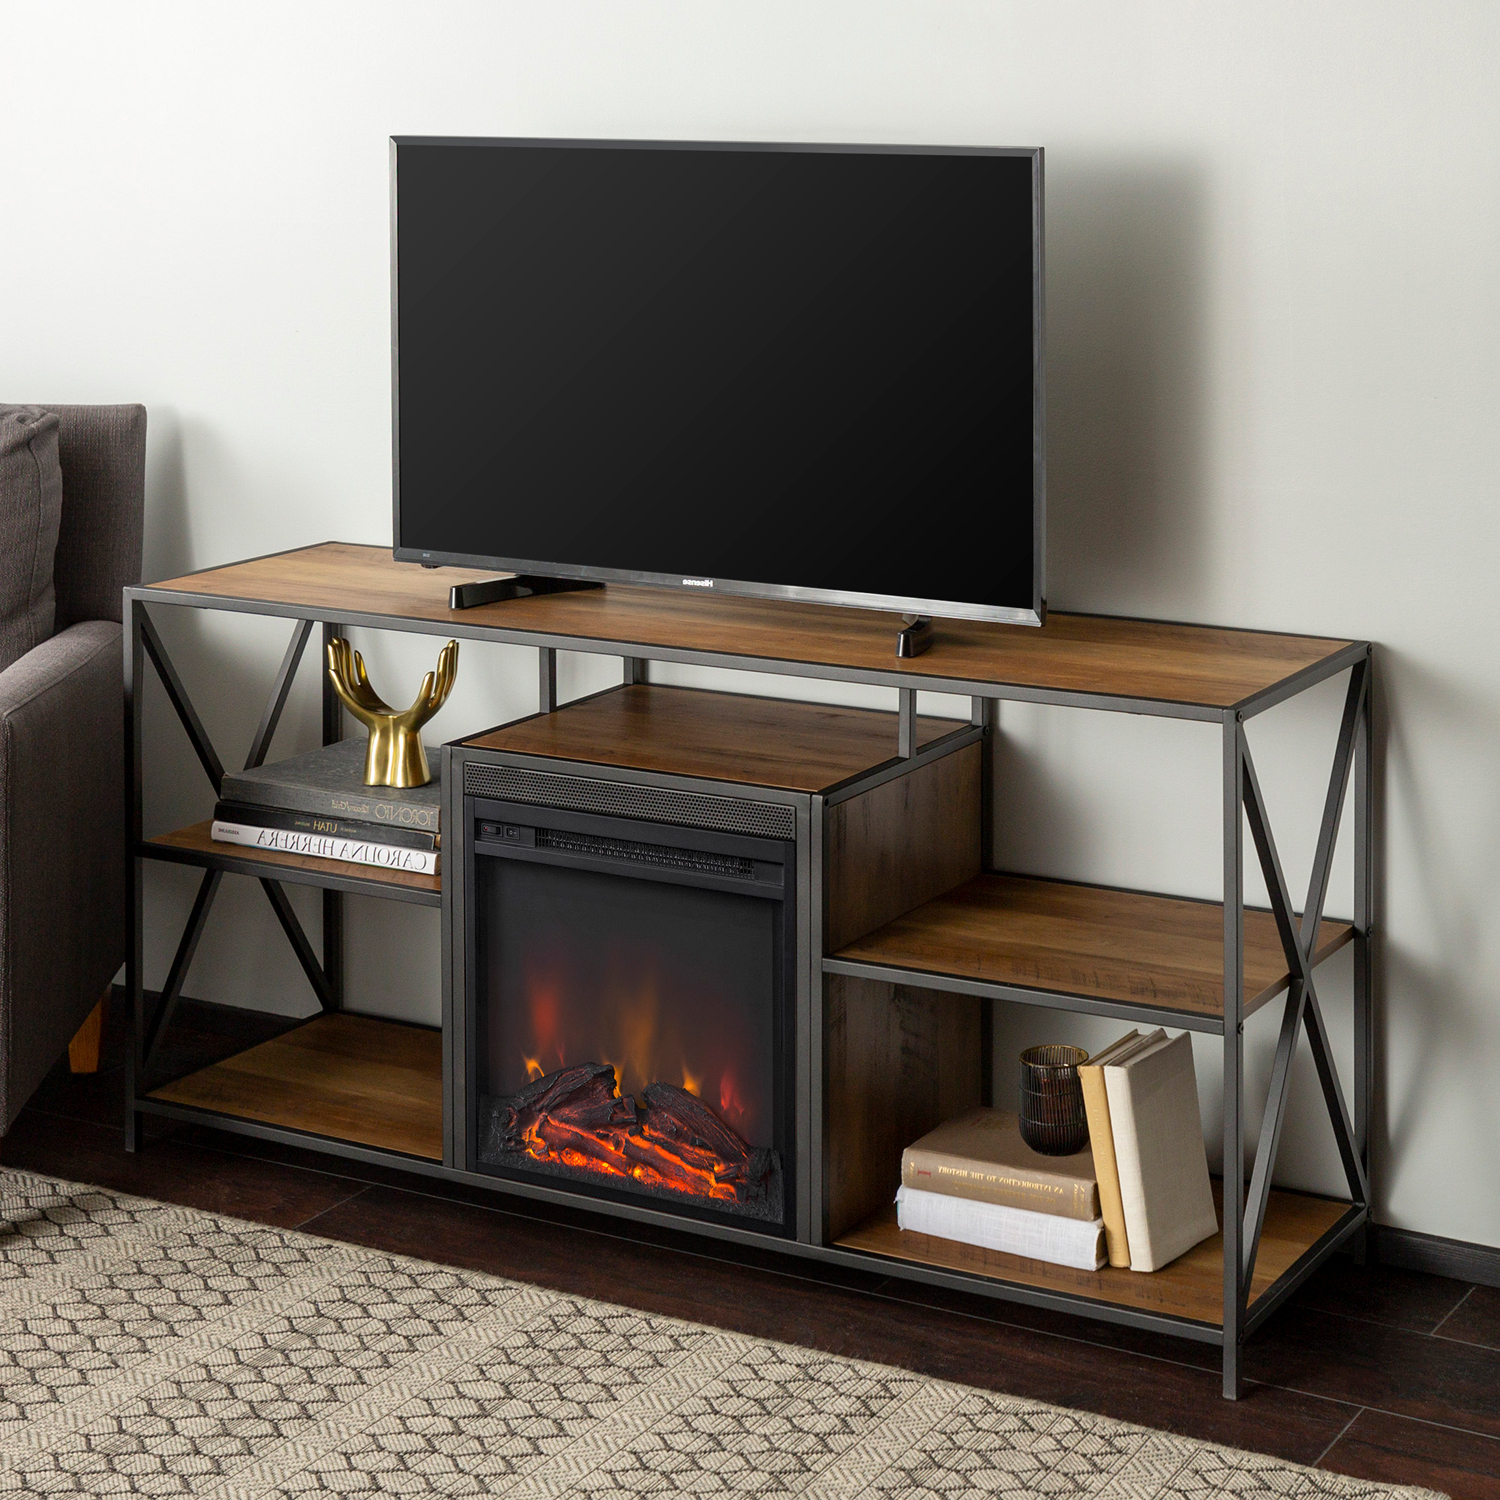 Latest Rustic Oak Tv Stand With Fireplace – Pier1 Regarding Urban Rustic Tv Stands (View 8 of 10)